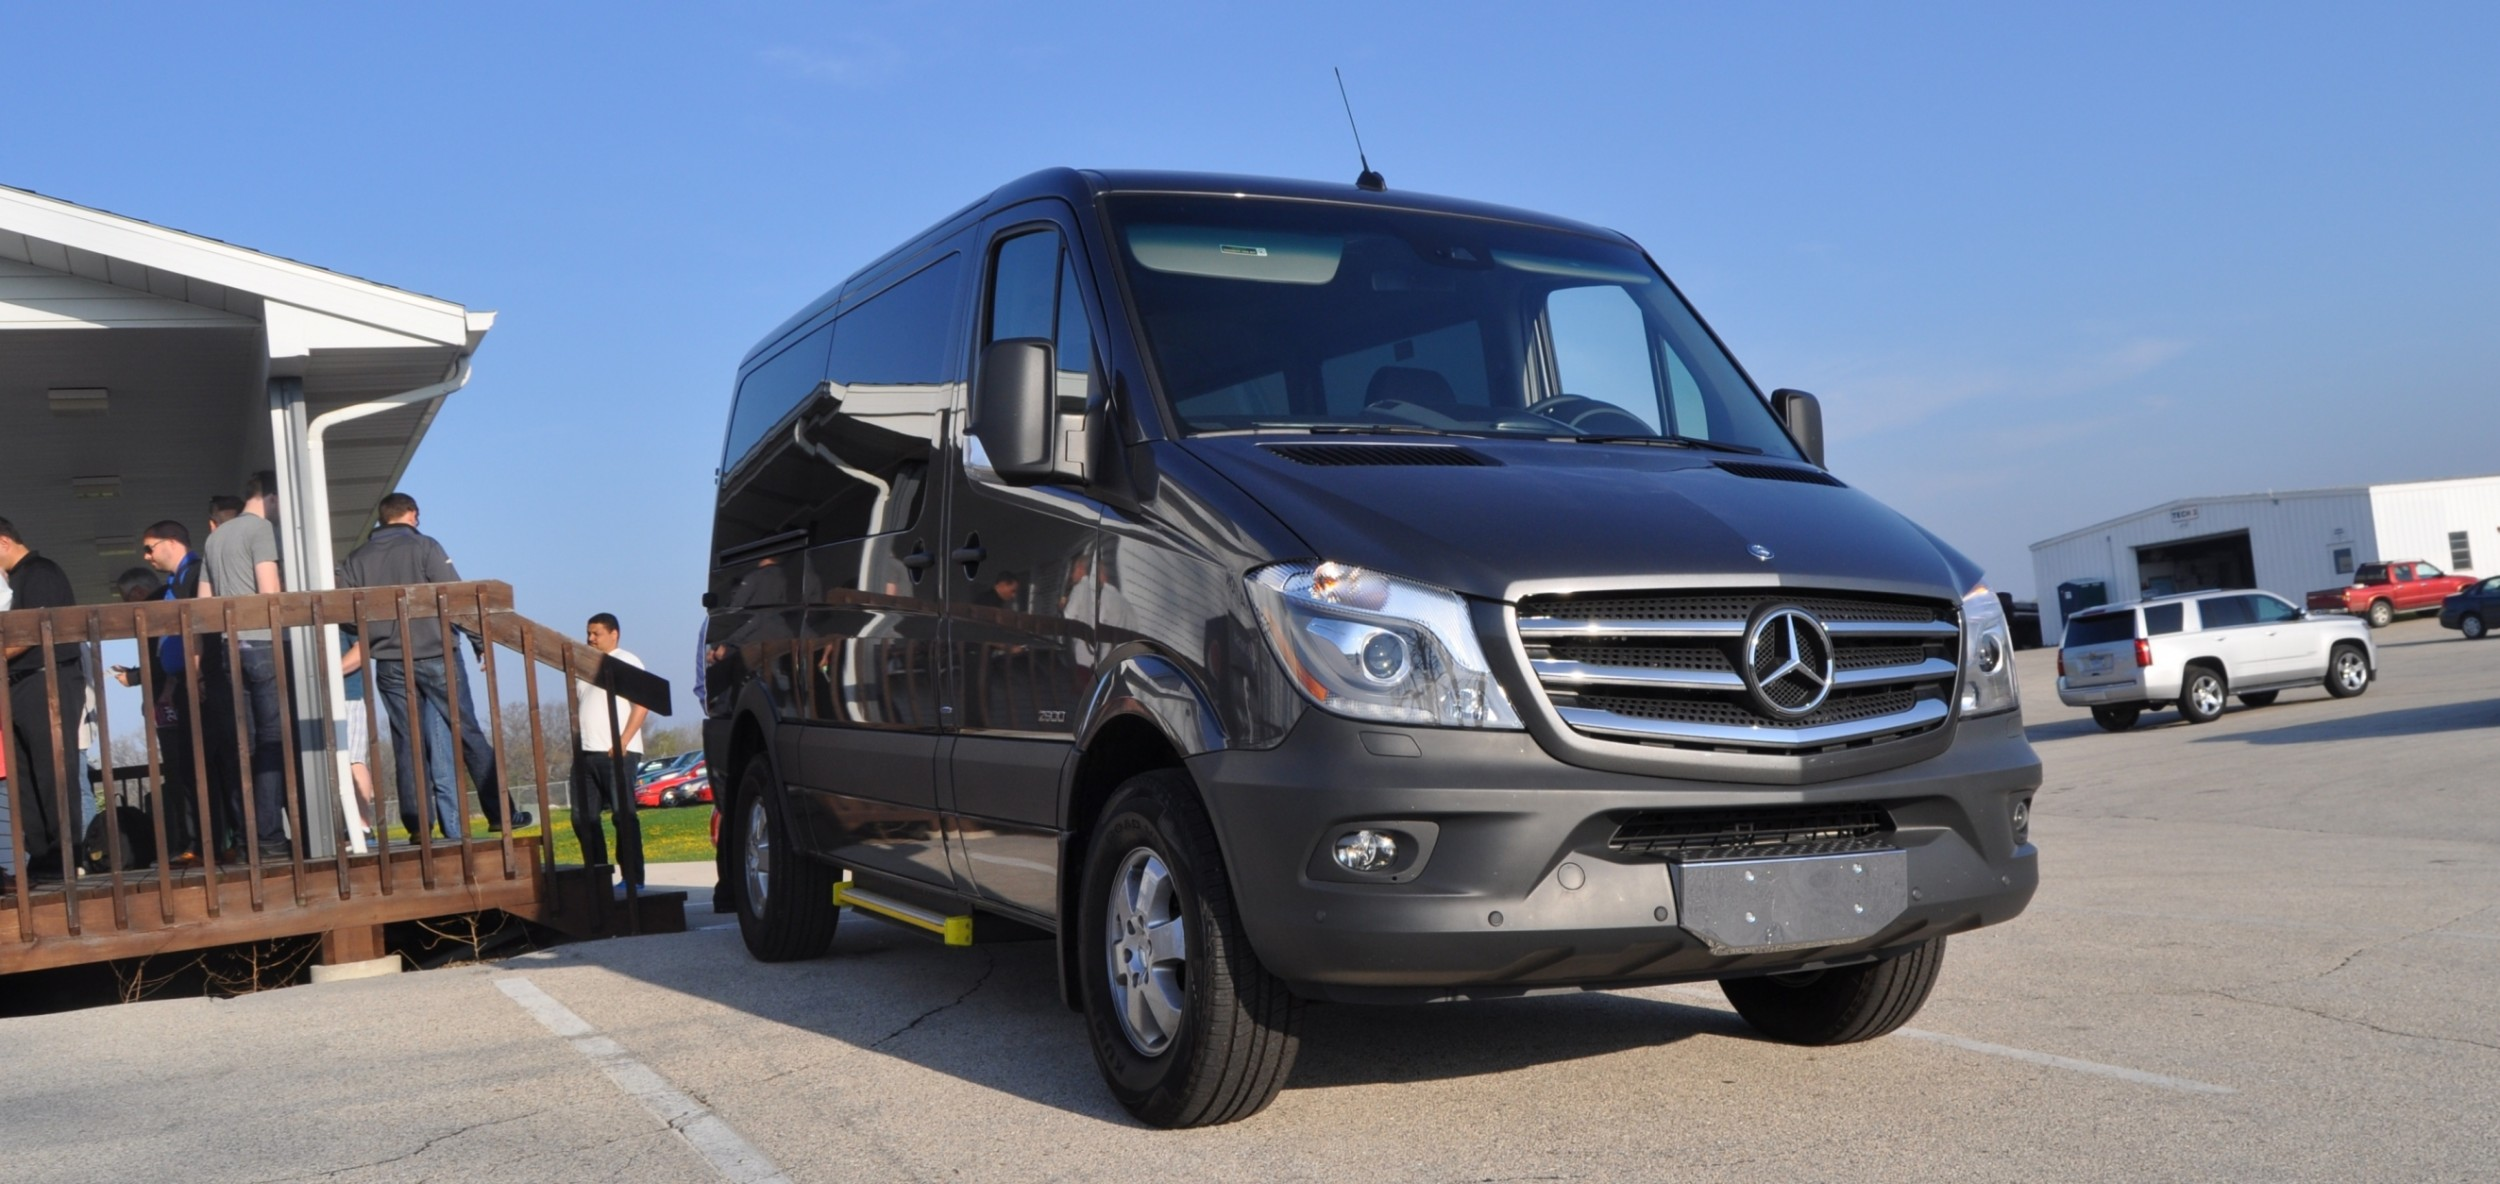 New 2014 mercedes benz sprinter vans in real life 2015 4x4 for 2015 mercedes benz van